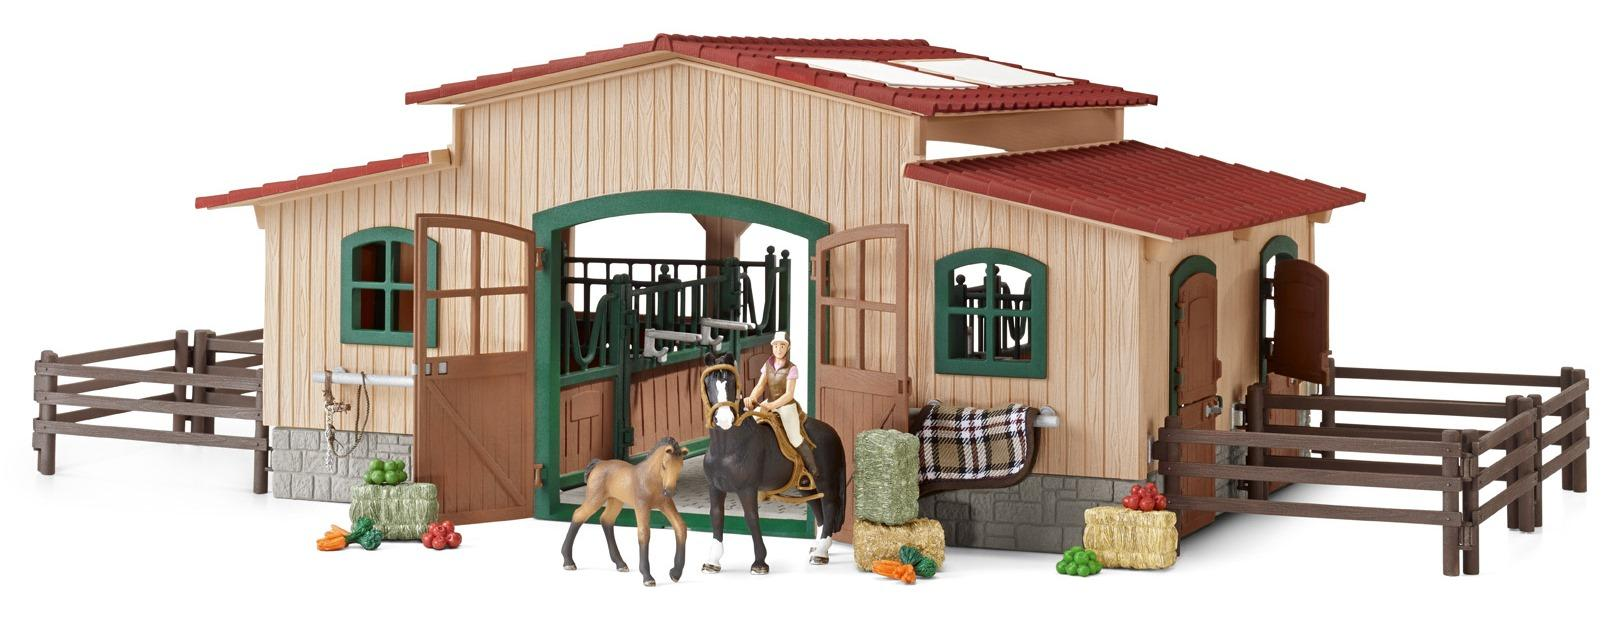 Amazon.com: Schleich Horse Stable with Accessories: Toys